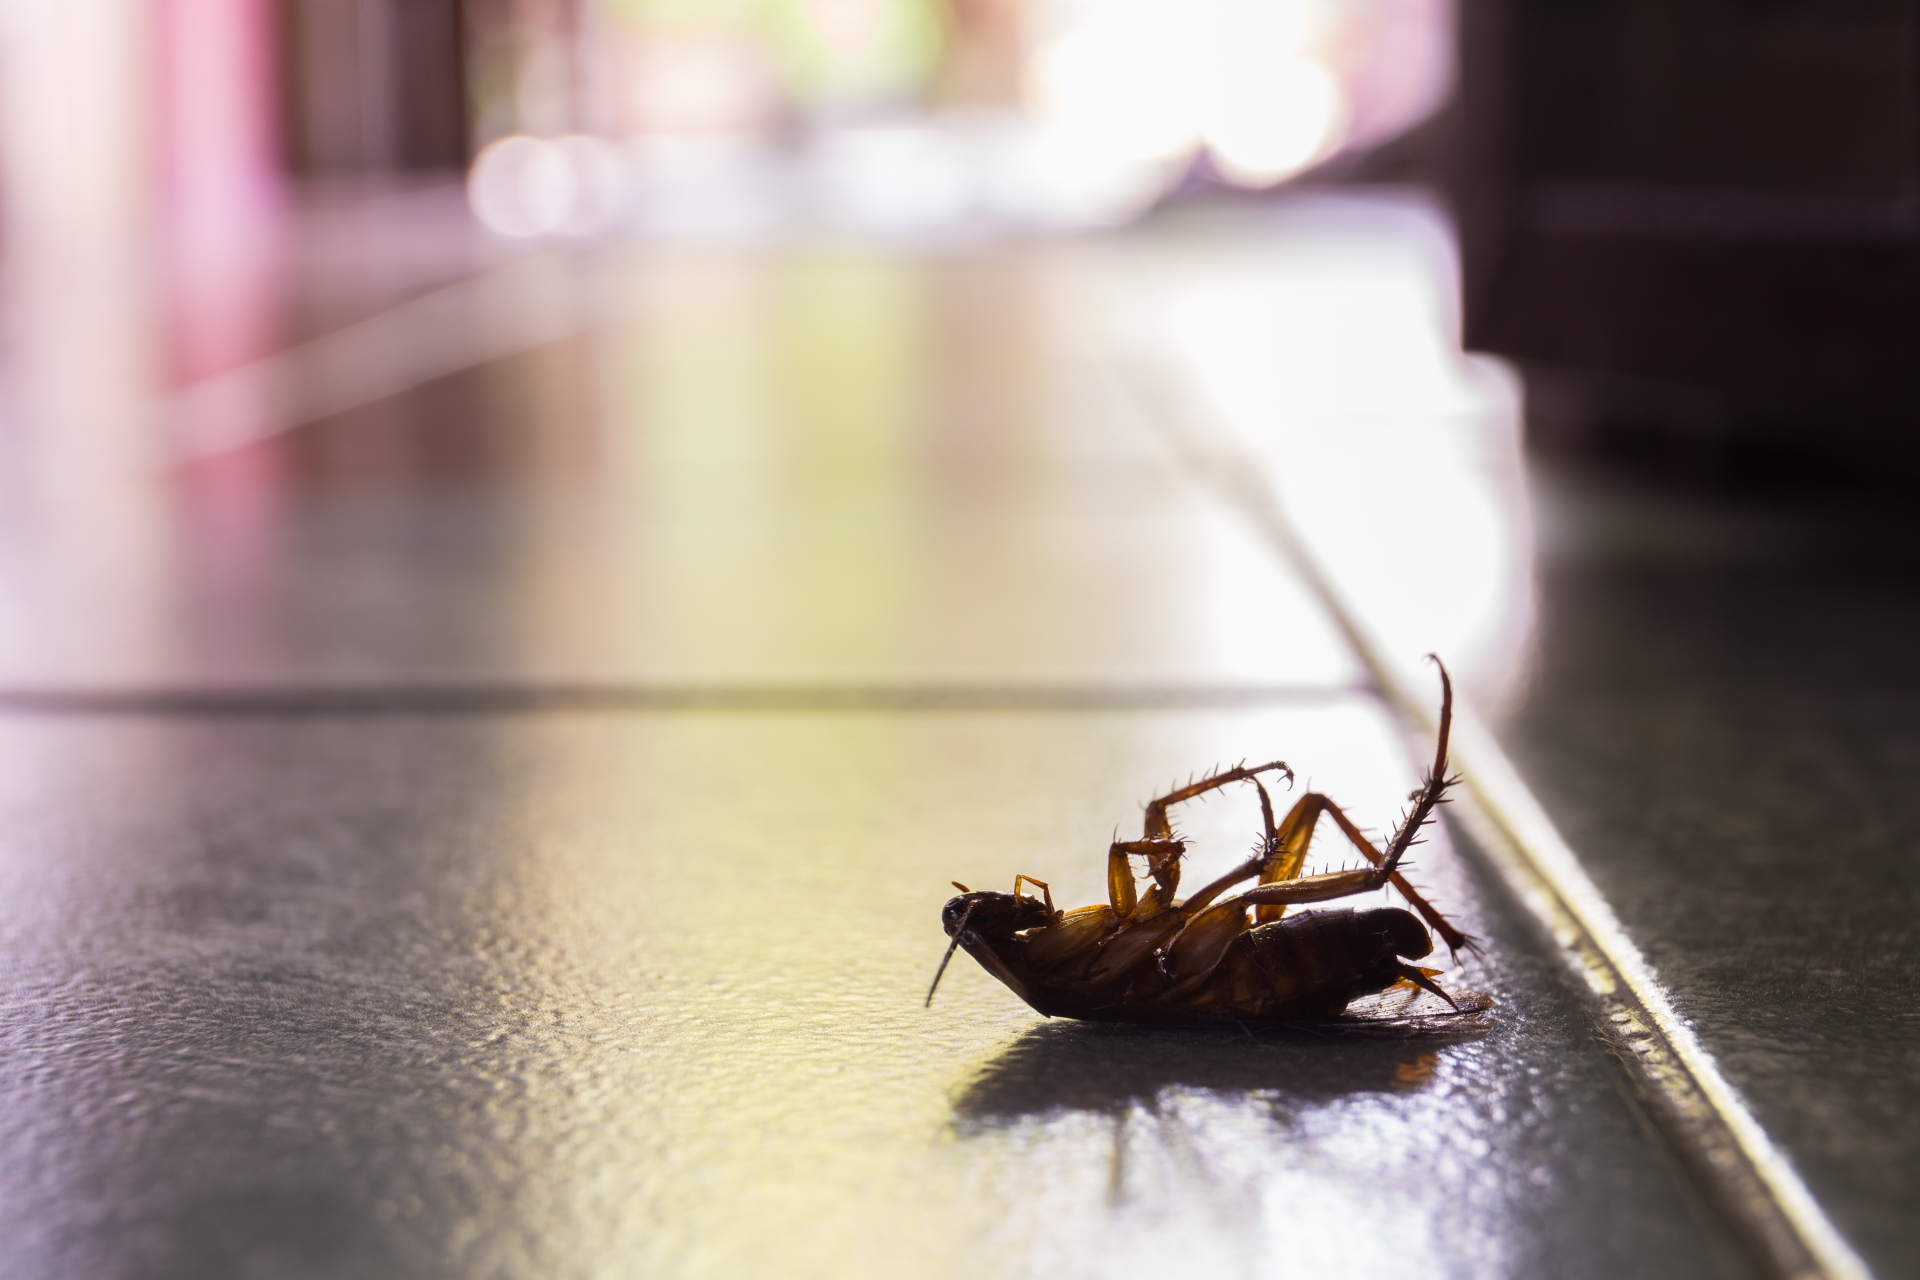 Cockroach Control, Pest Control in Crouch End, N8. Call Now 020 8166 9746